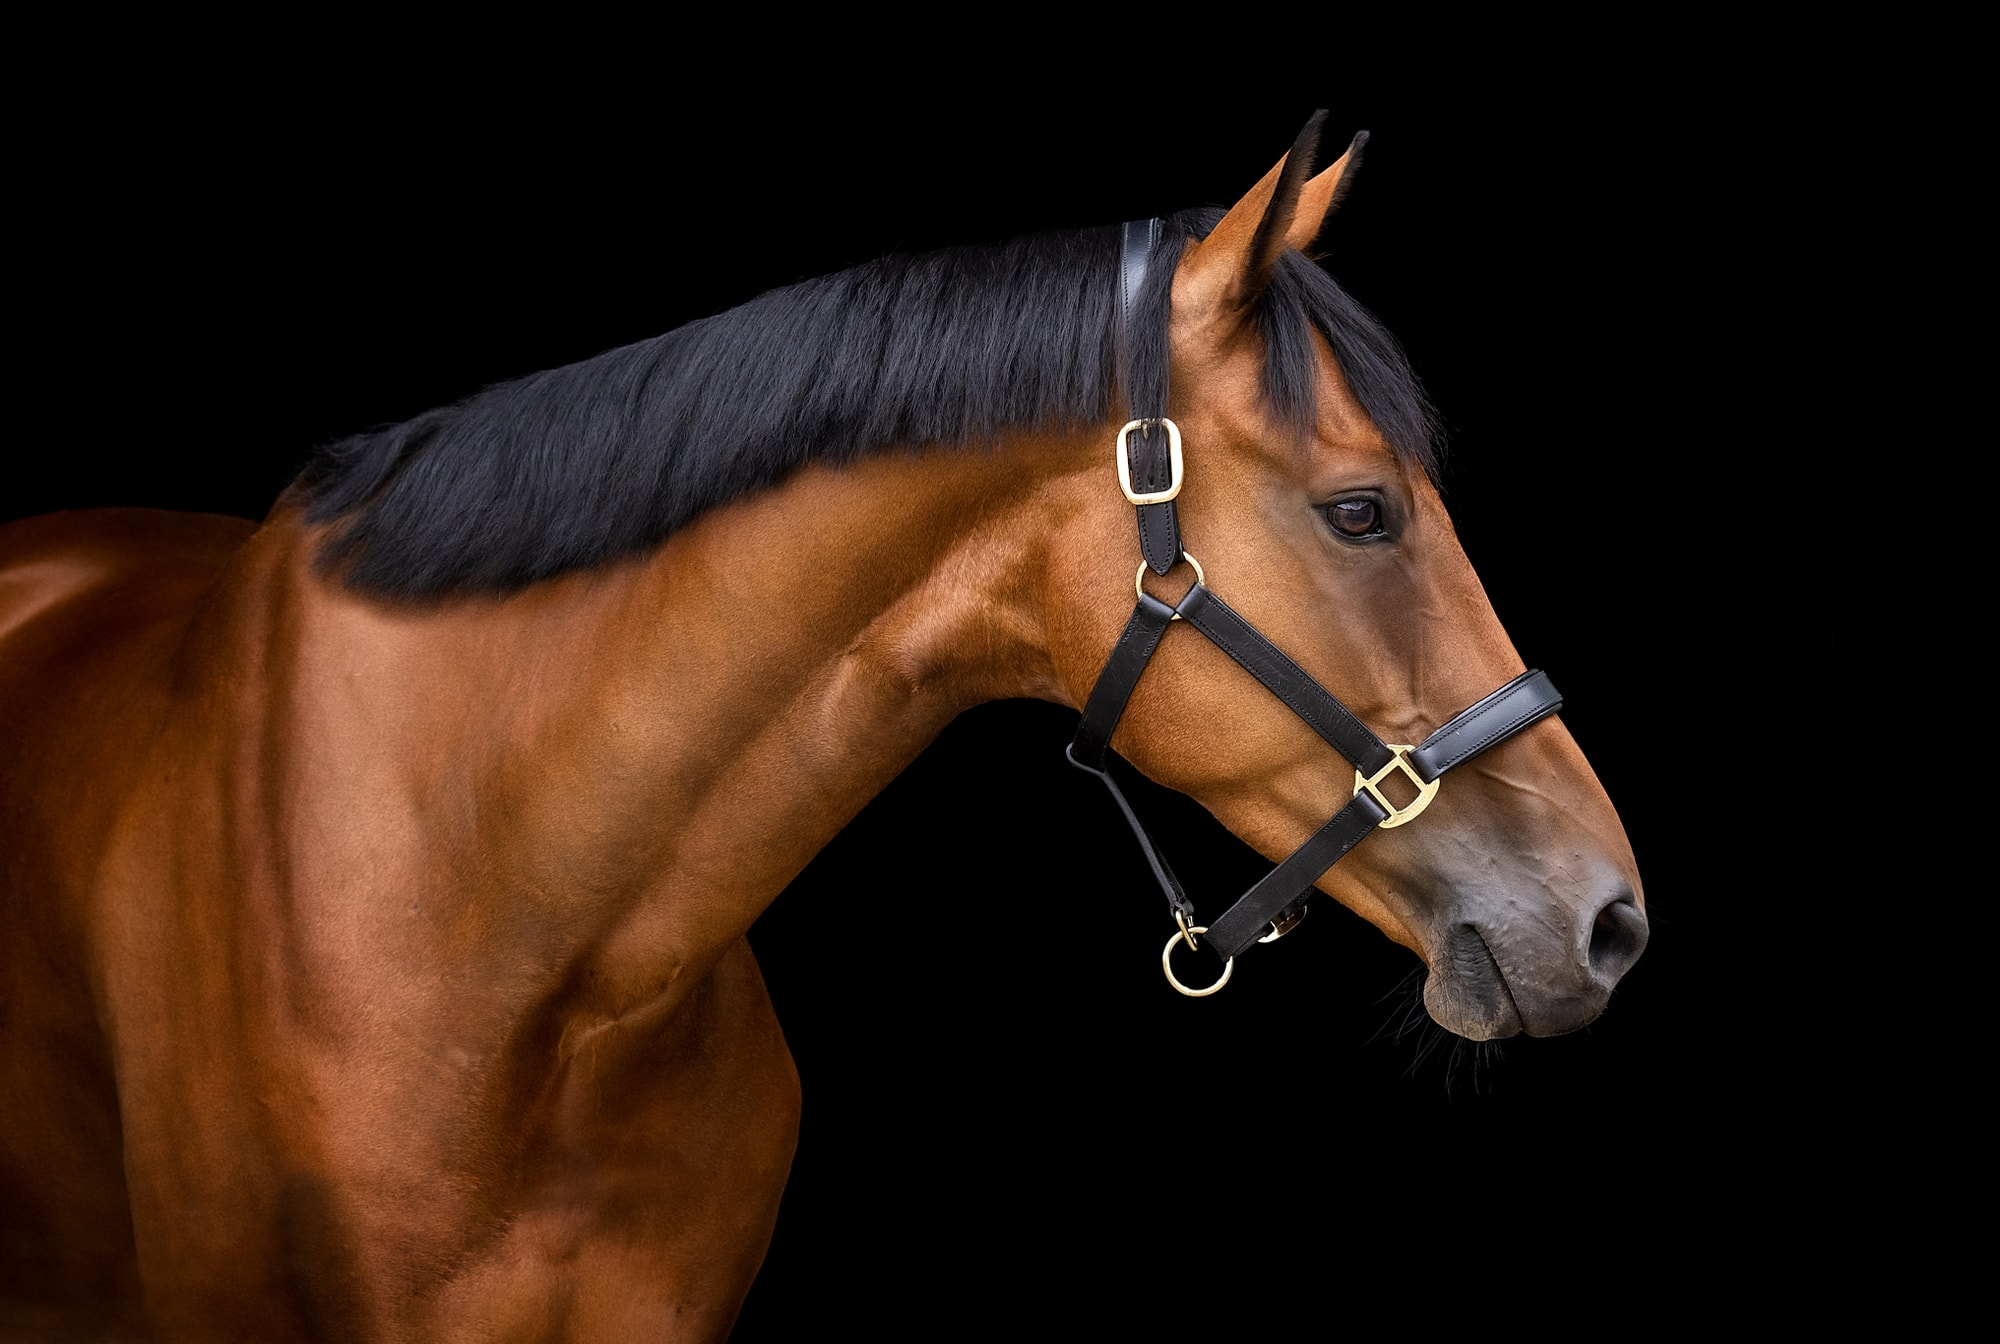 Profile of a beautiful Bay Horse against a black background in a Suffolk Barn